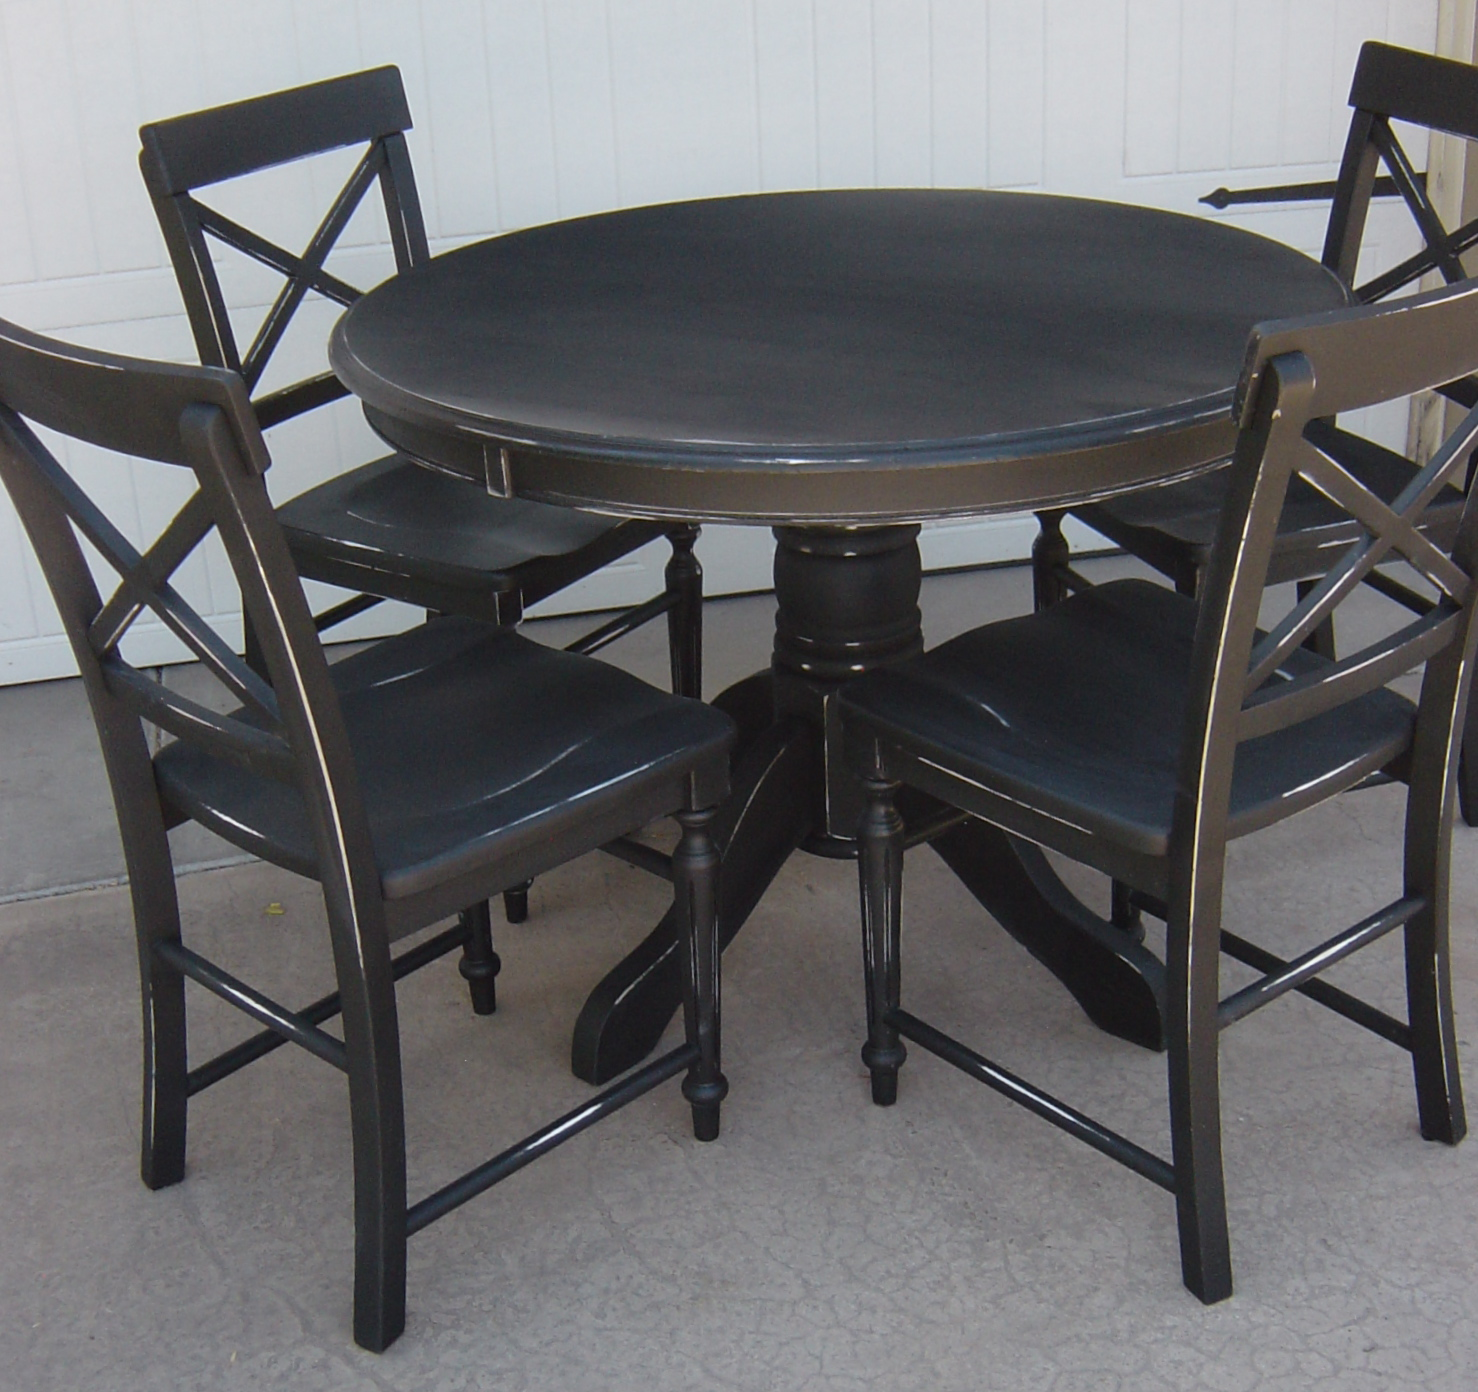 8 Chair Kitchen Table Viking Kitchens The Backyard Boutique By Five To Nine Furnishings Pier